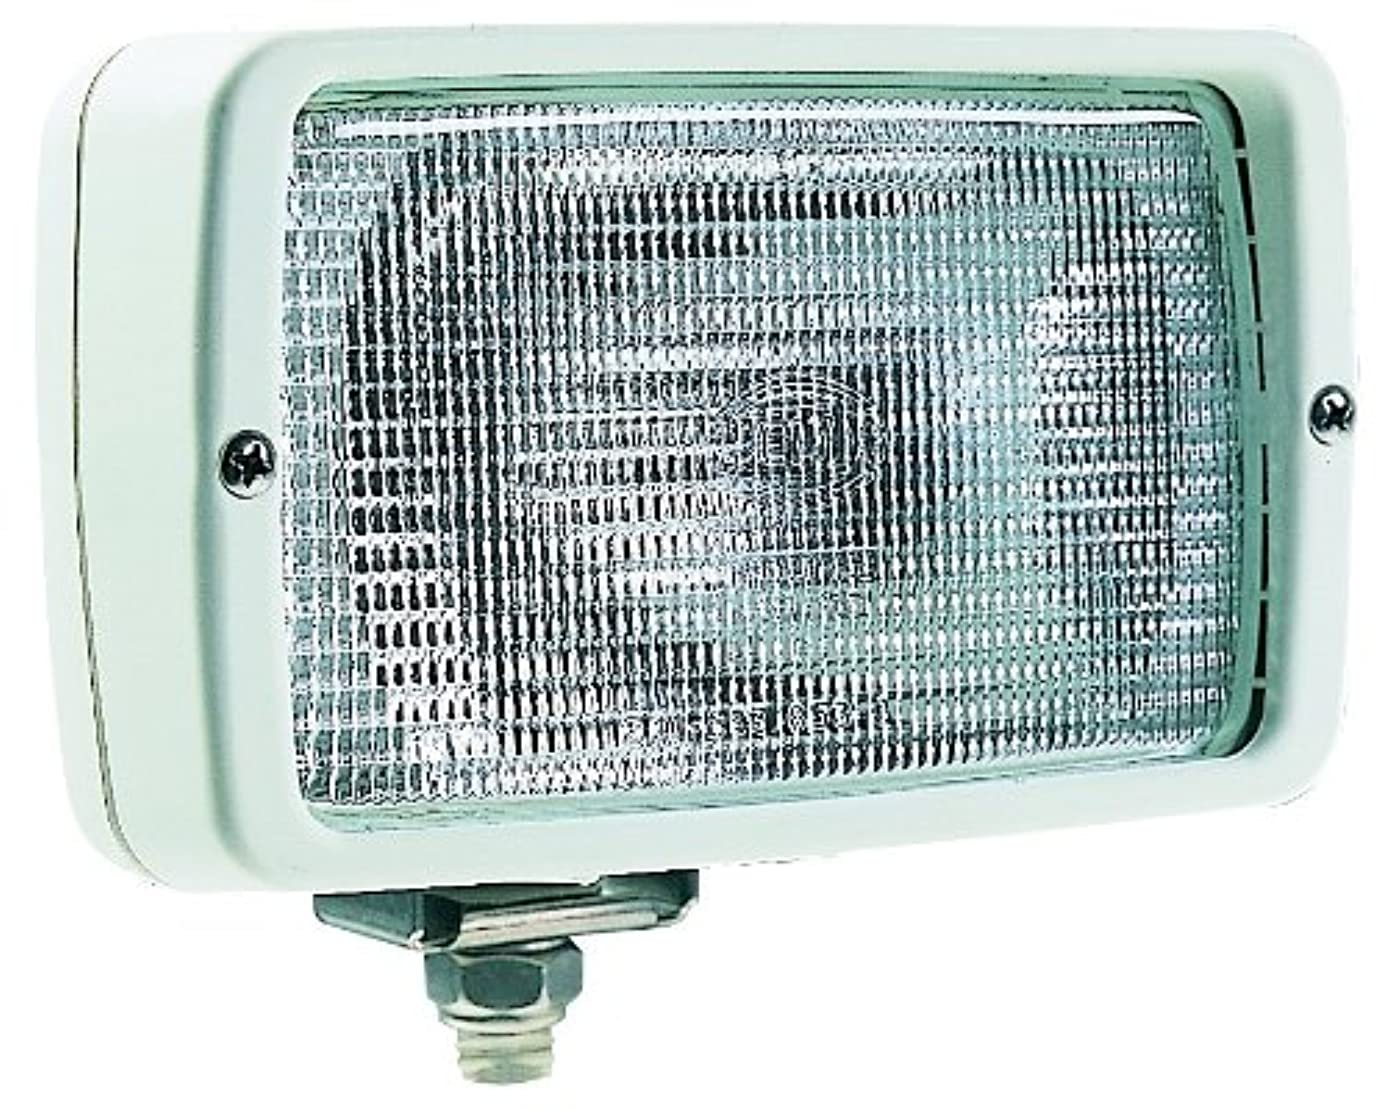 HELLA 007118051 '7118' Series 12V DC Halogen Deck Light with Structured Lens and Off-White Housing